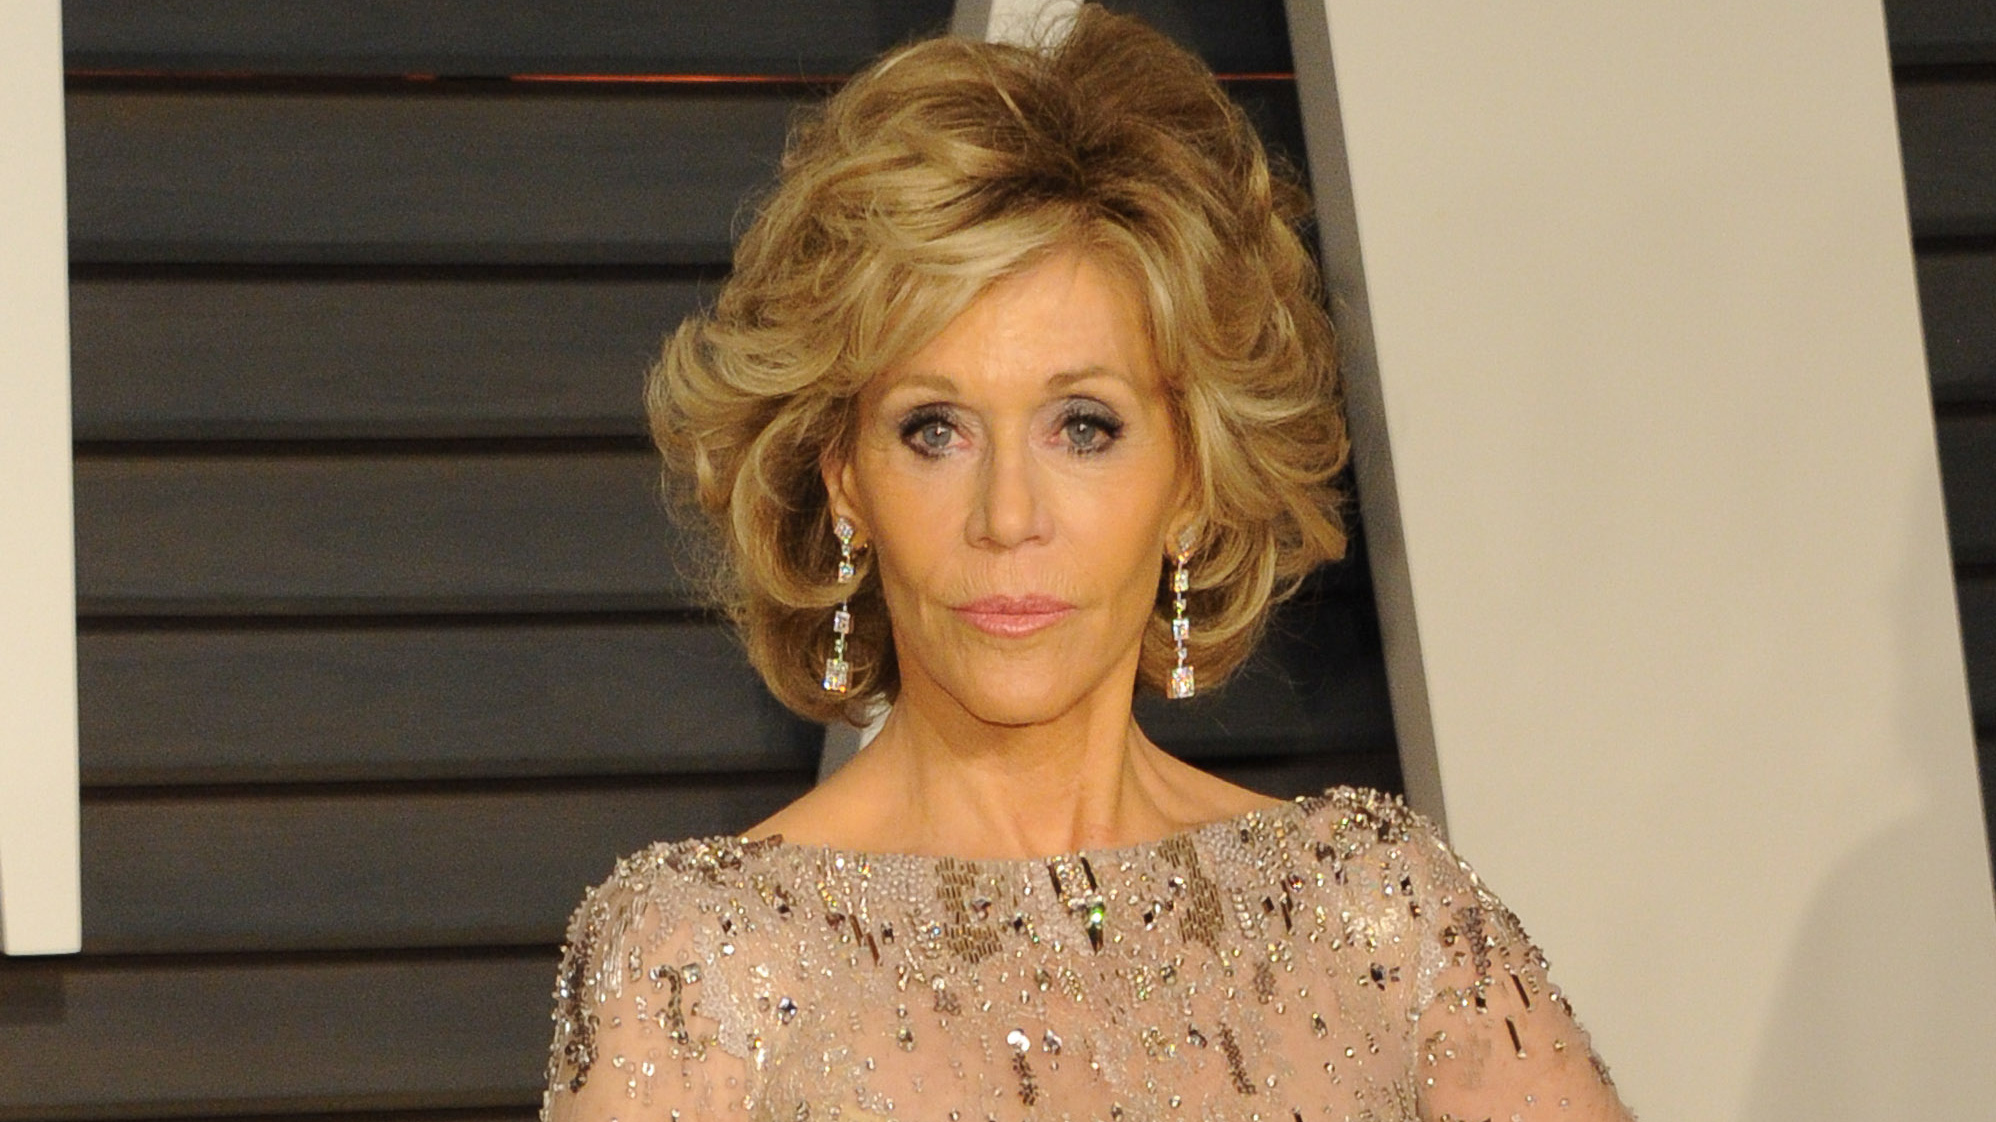 Jane Fonda urges Dems to be 'as tough as Mitch McConnell' block RBG successor – Fox News